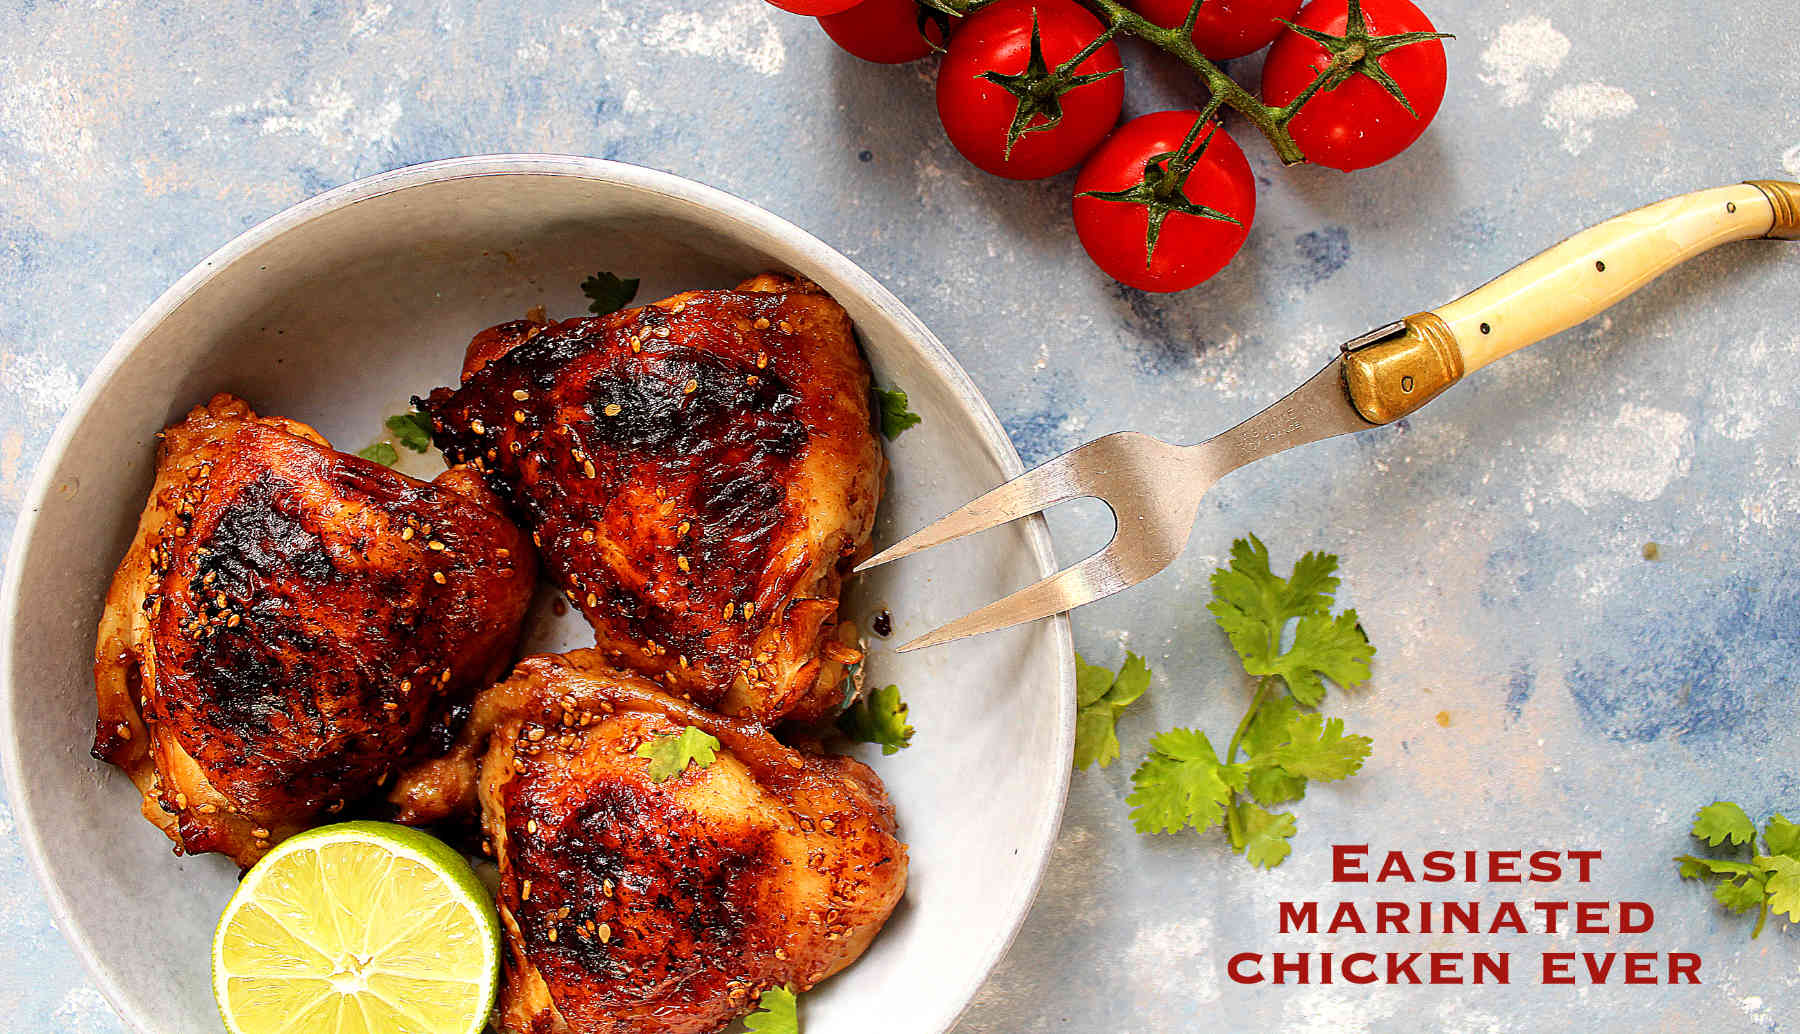 Easiest marinated chicken ever